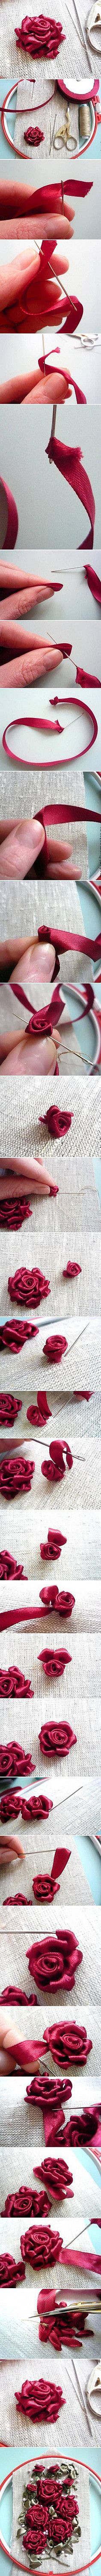 Diy flowers flowers diy sew crafts home made easy crafts craft idea diy flowers flowers diy sew crafts home made easy crafts craft idea crafts ideas diy ideas diy crafts diy idea do it yourself diy projects diy craft solutioingenieria Gallery